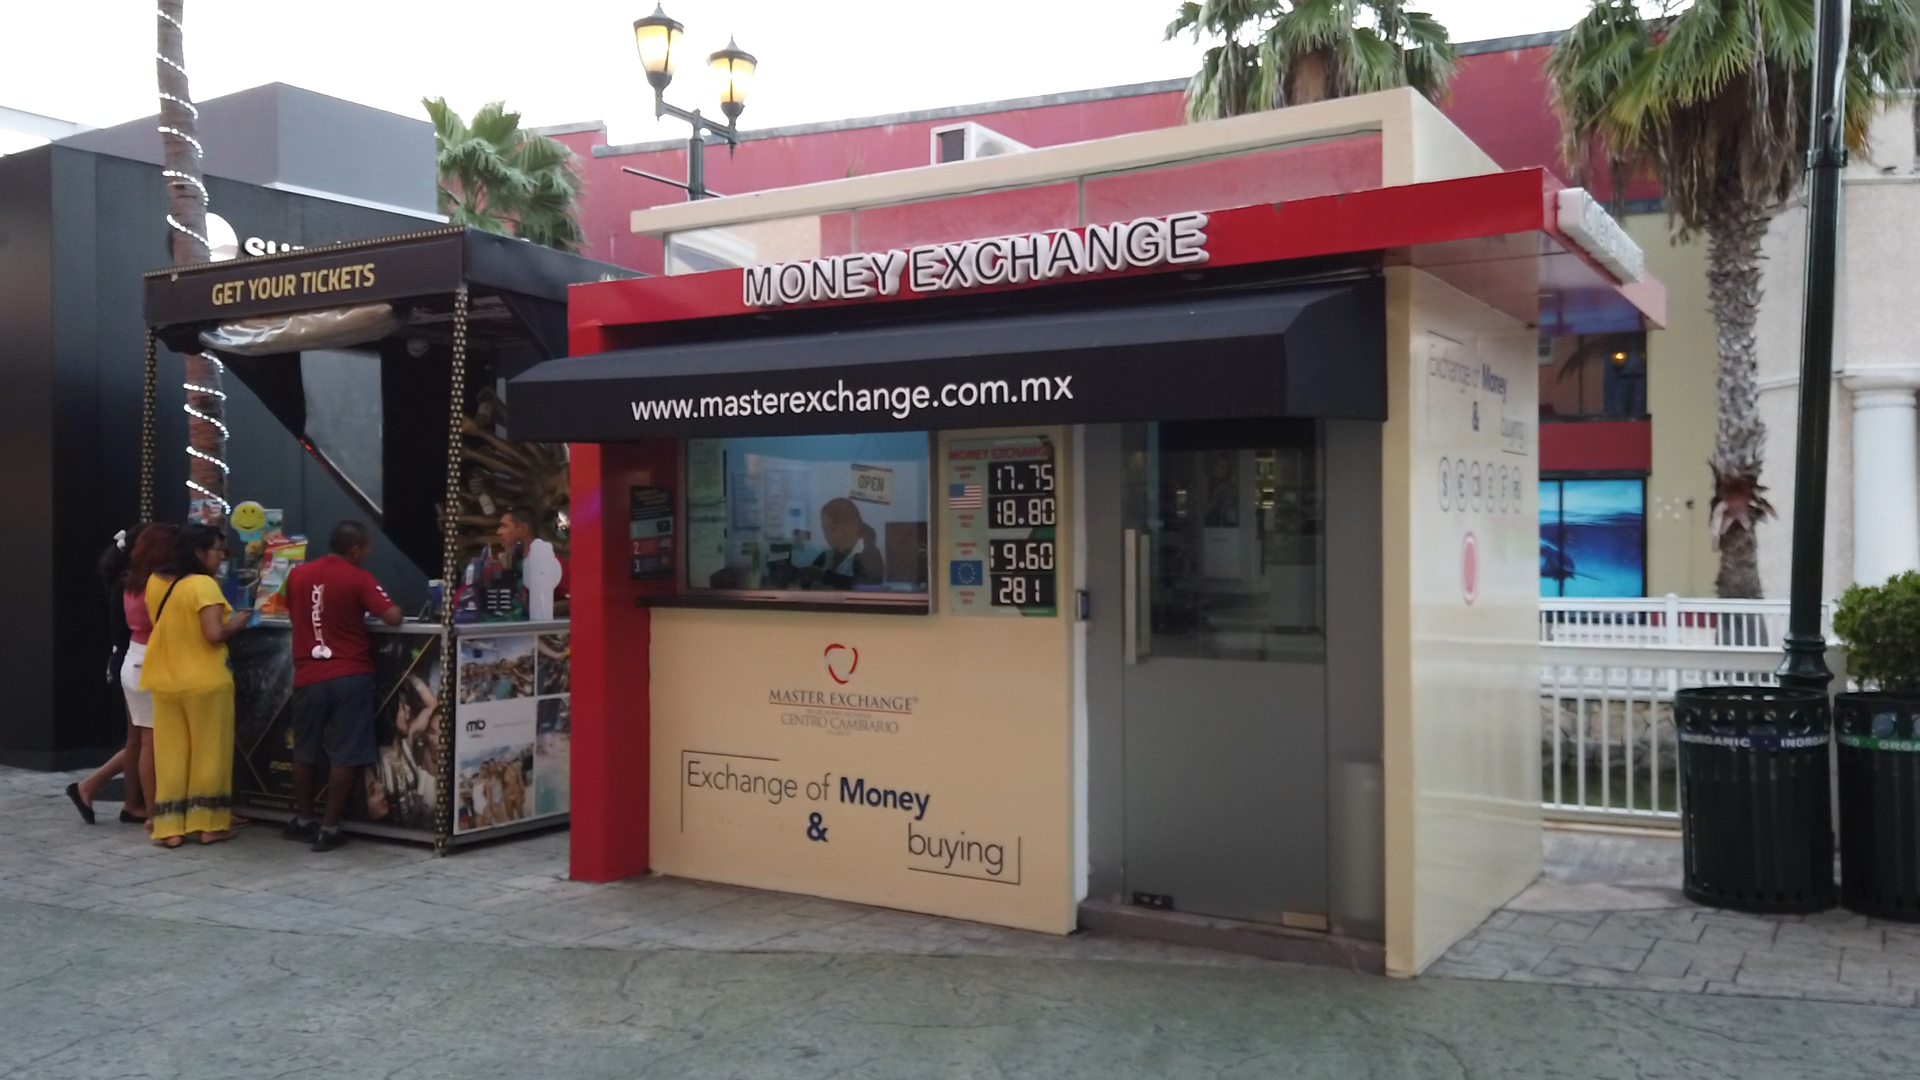 MONEYEXCHANGE 3 – La Isla Shopping Centre, Cancun (Crédito OCCRP)